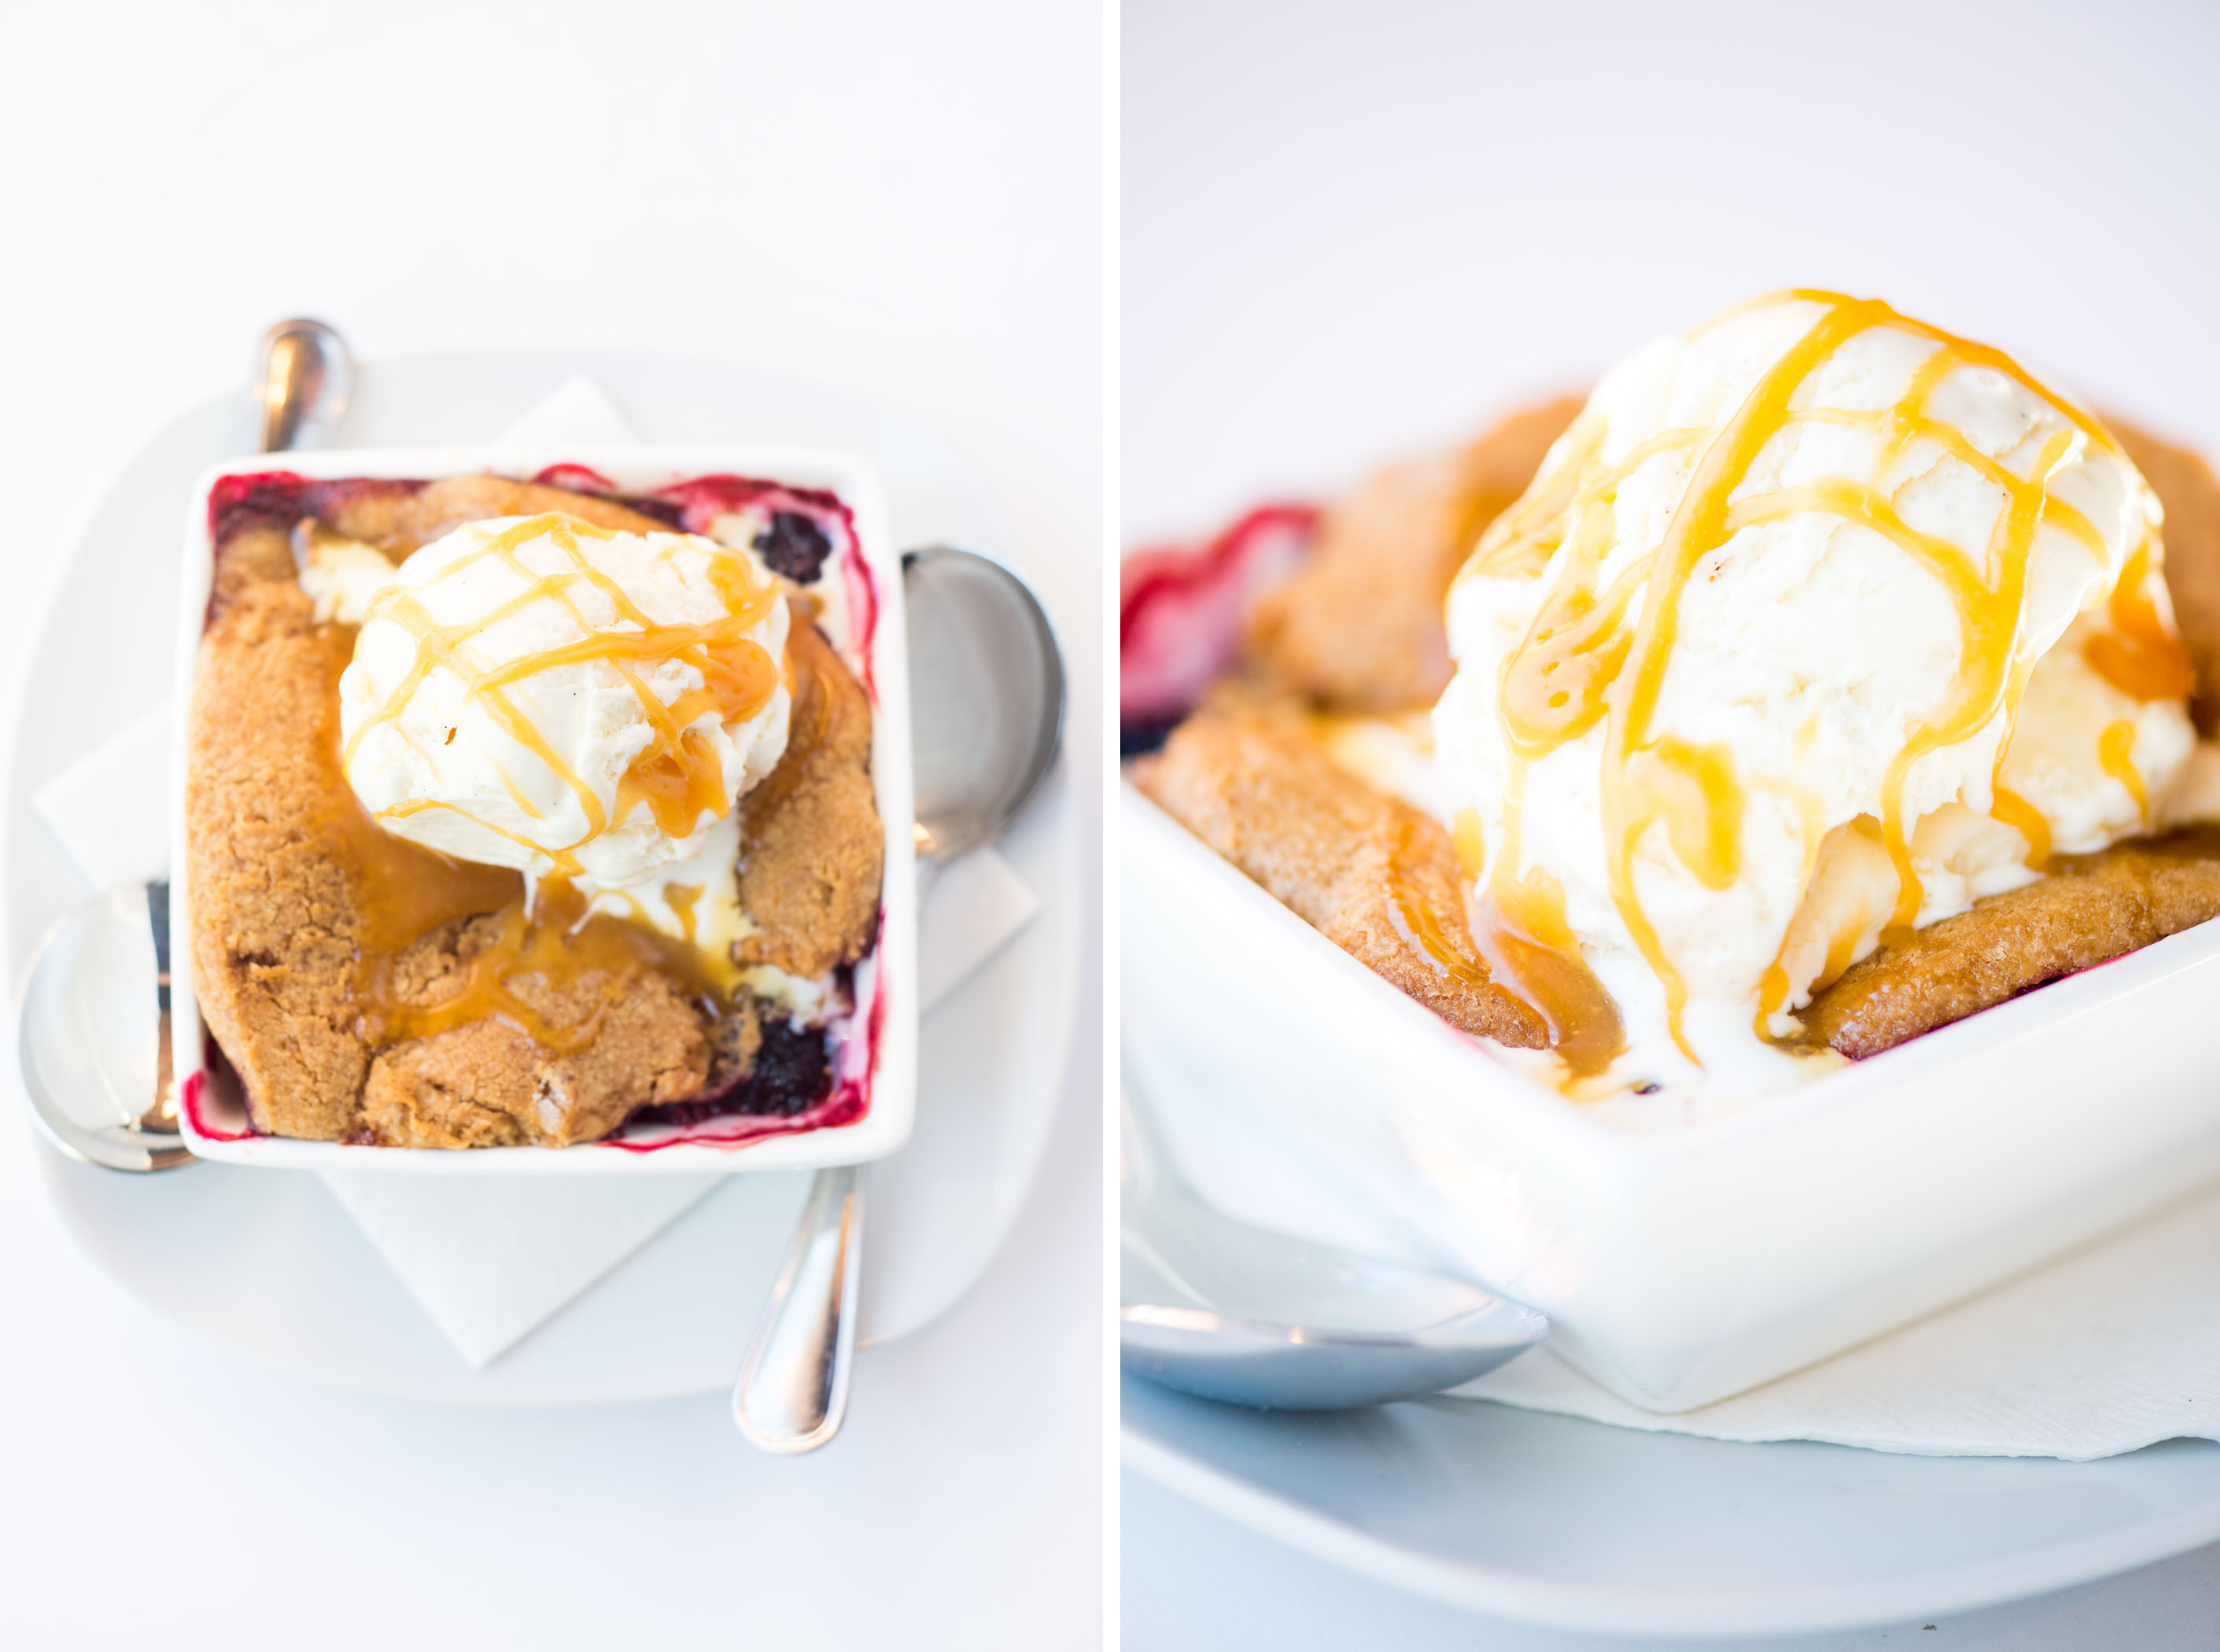 Berry Cobbler with Ice Cream Image